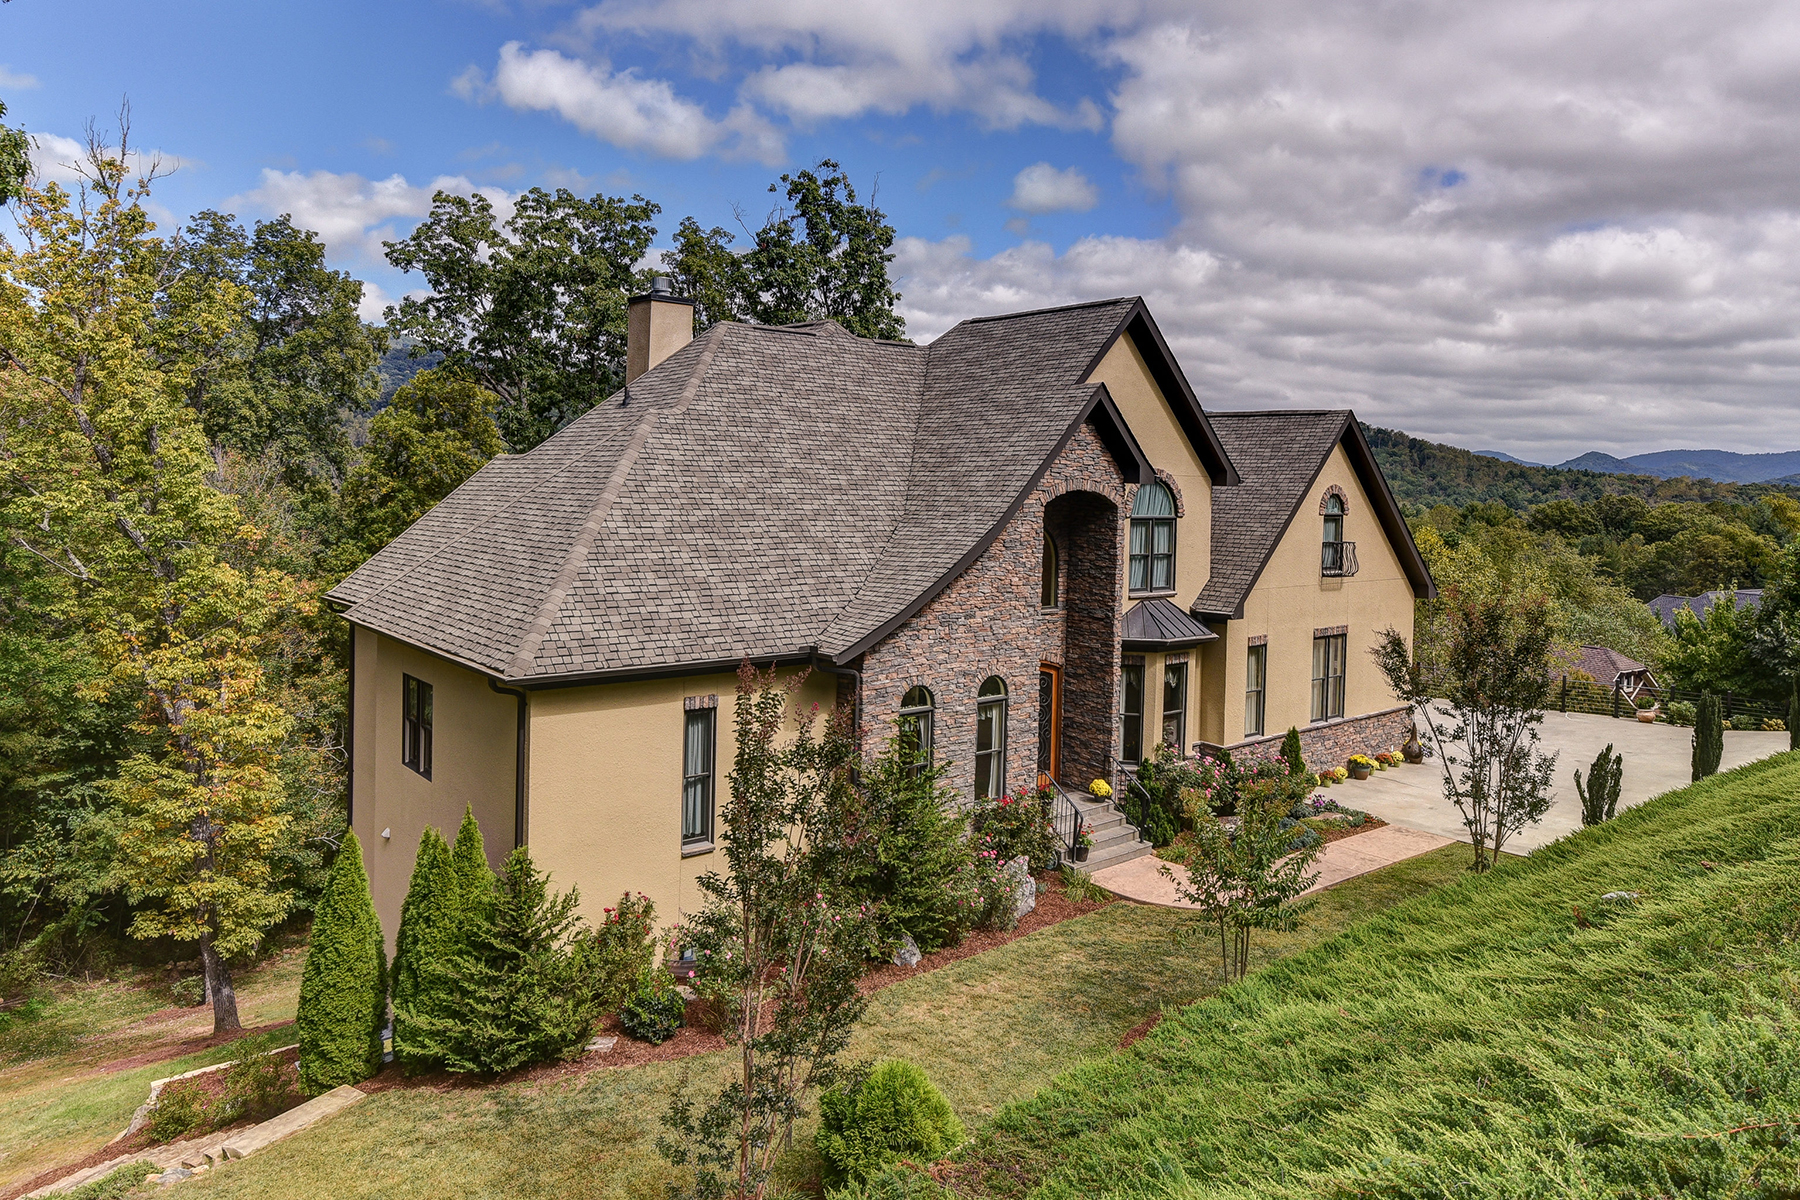 Single Family Home for Active at THE WILLOWS 103 Willow Farm Rd Fairview, North Carolina 28730 United States